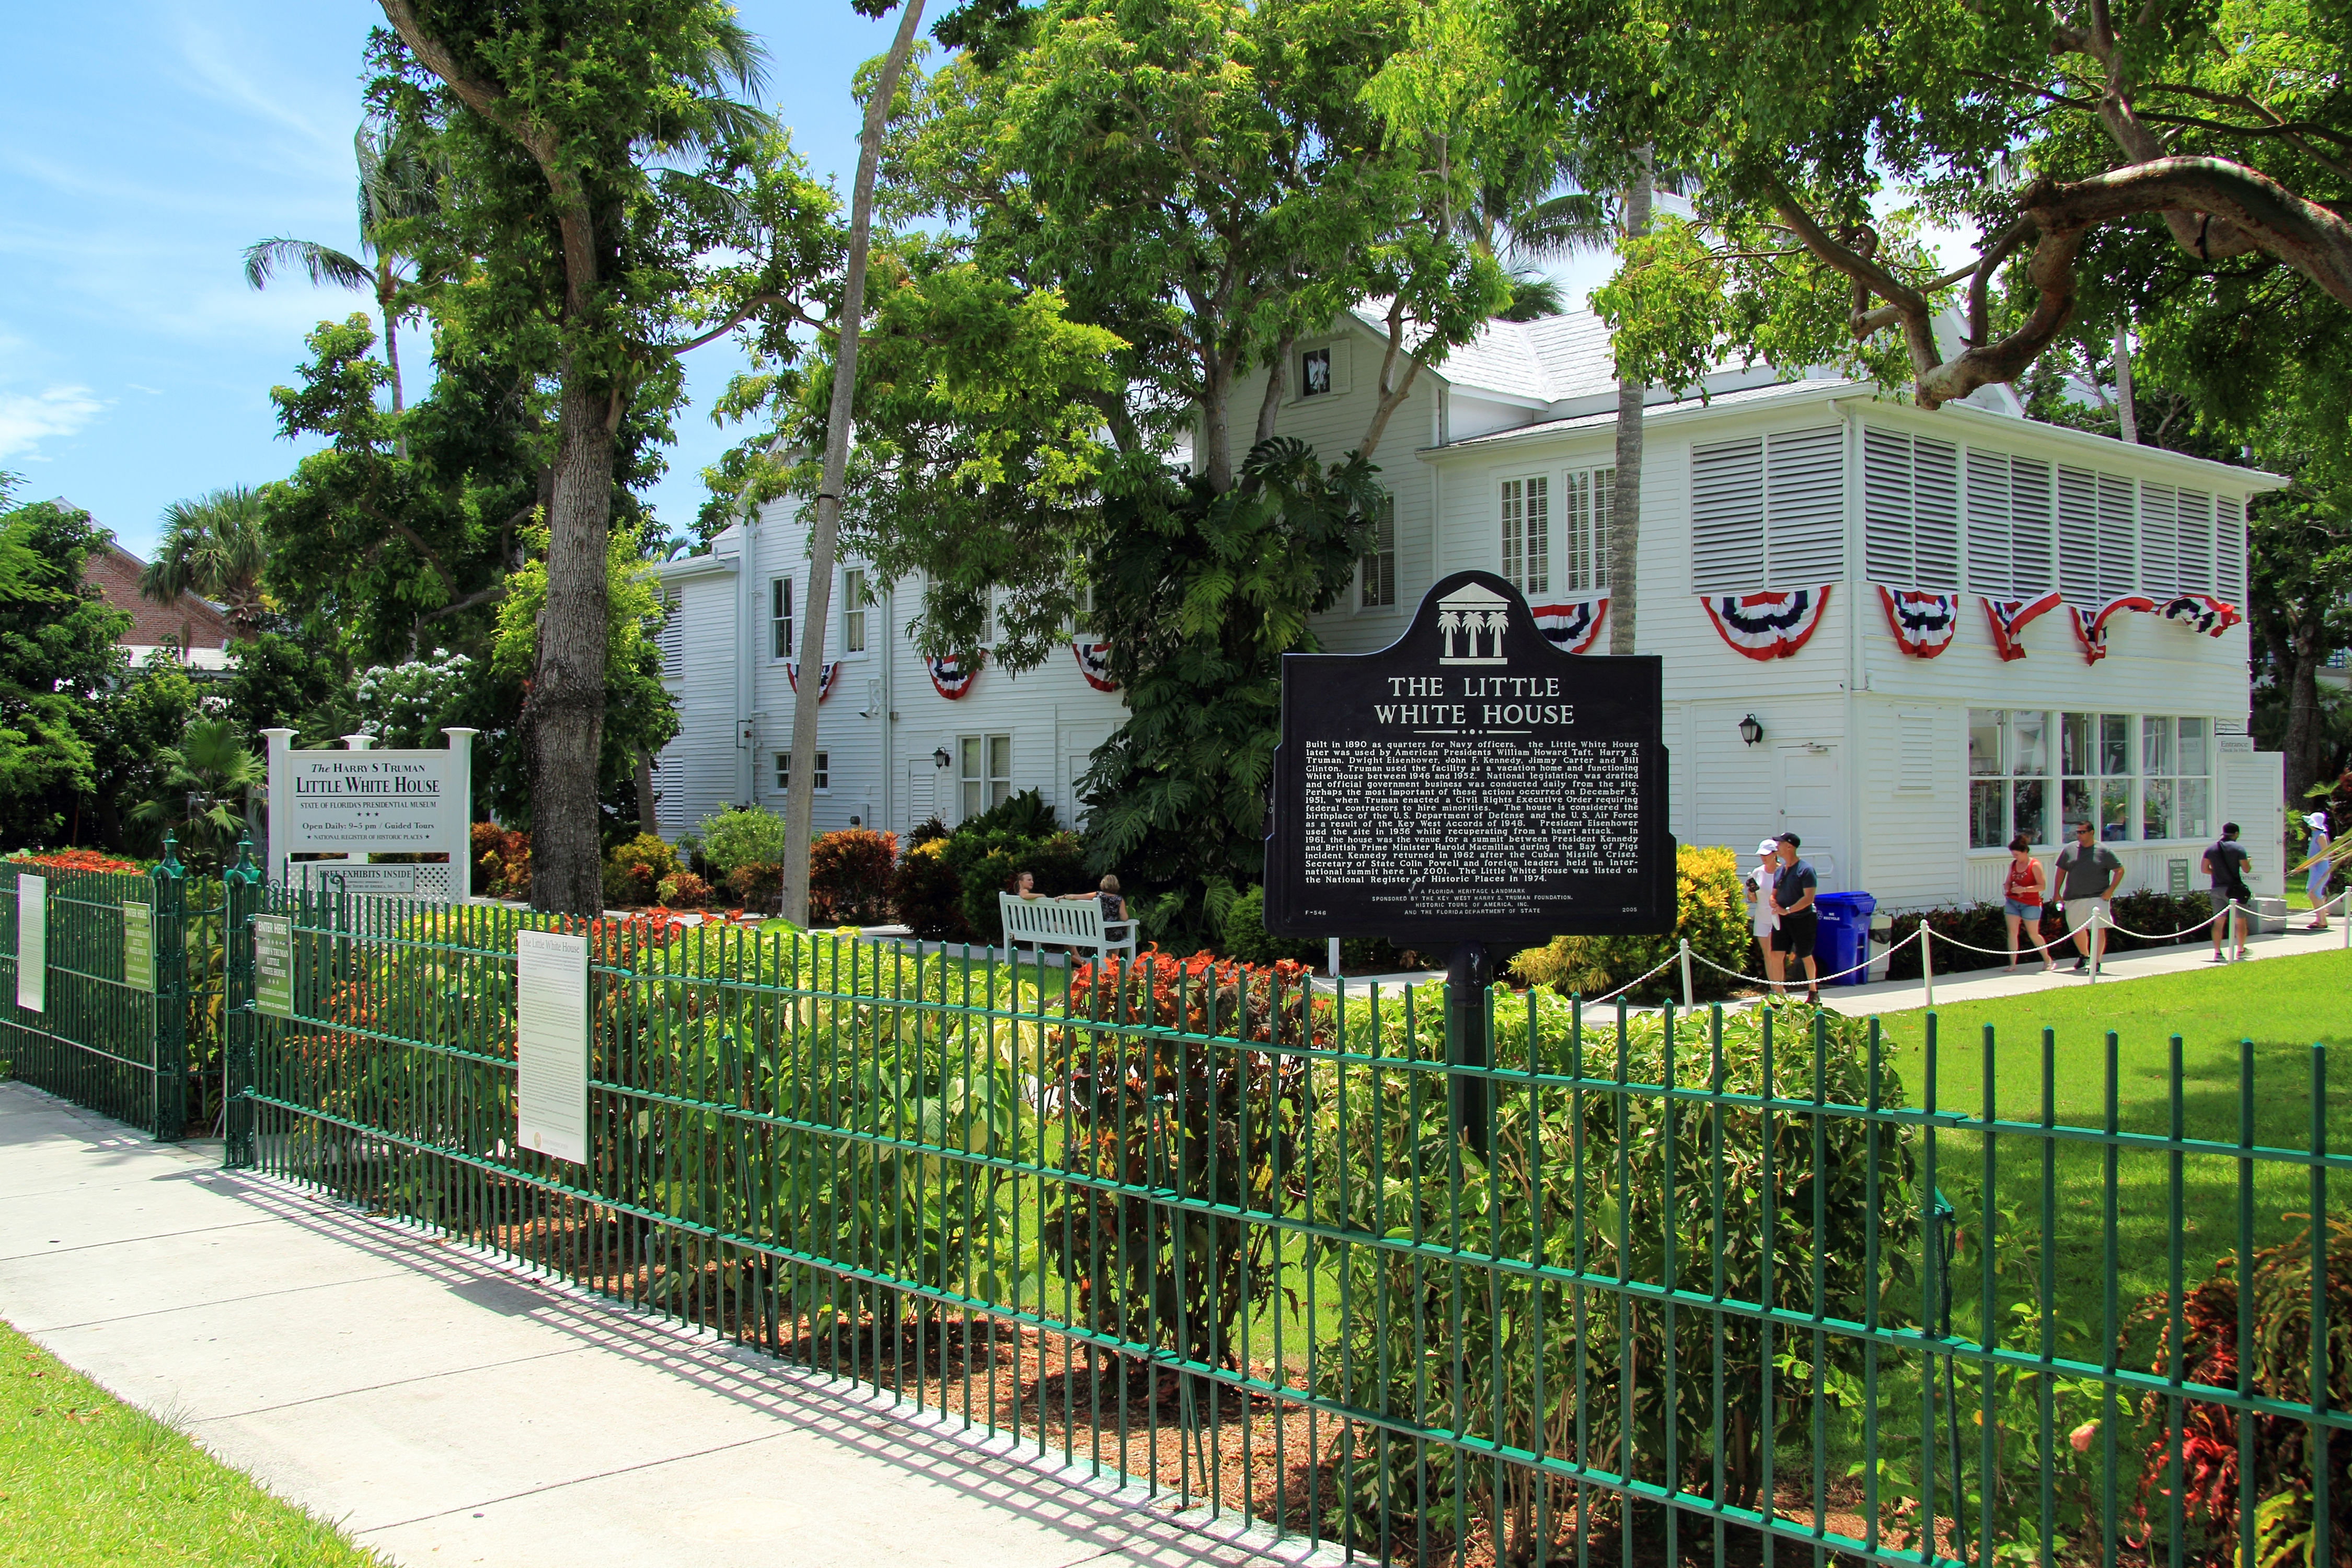 Why You Have to Visit The Little White House on Your Next Key West Trip